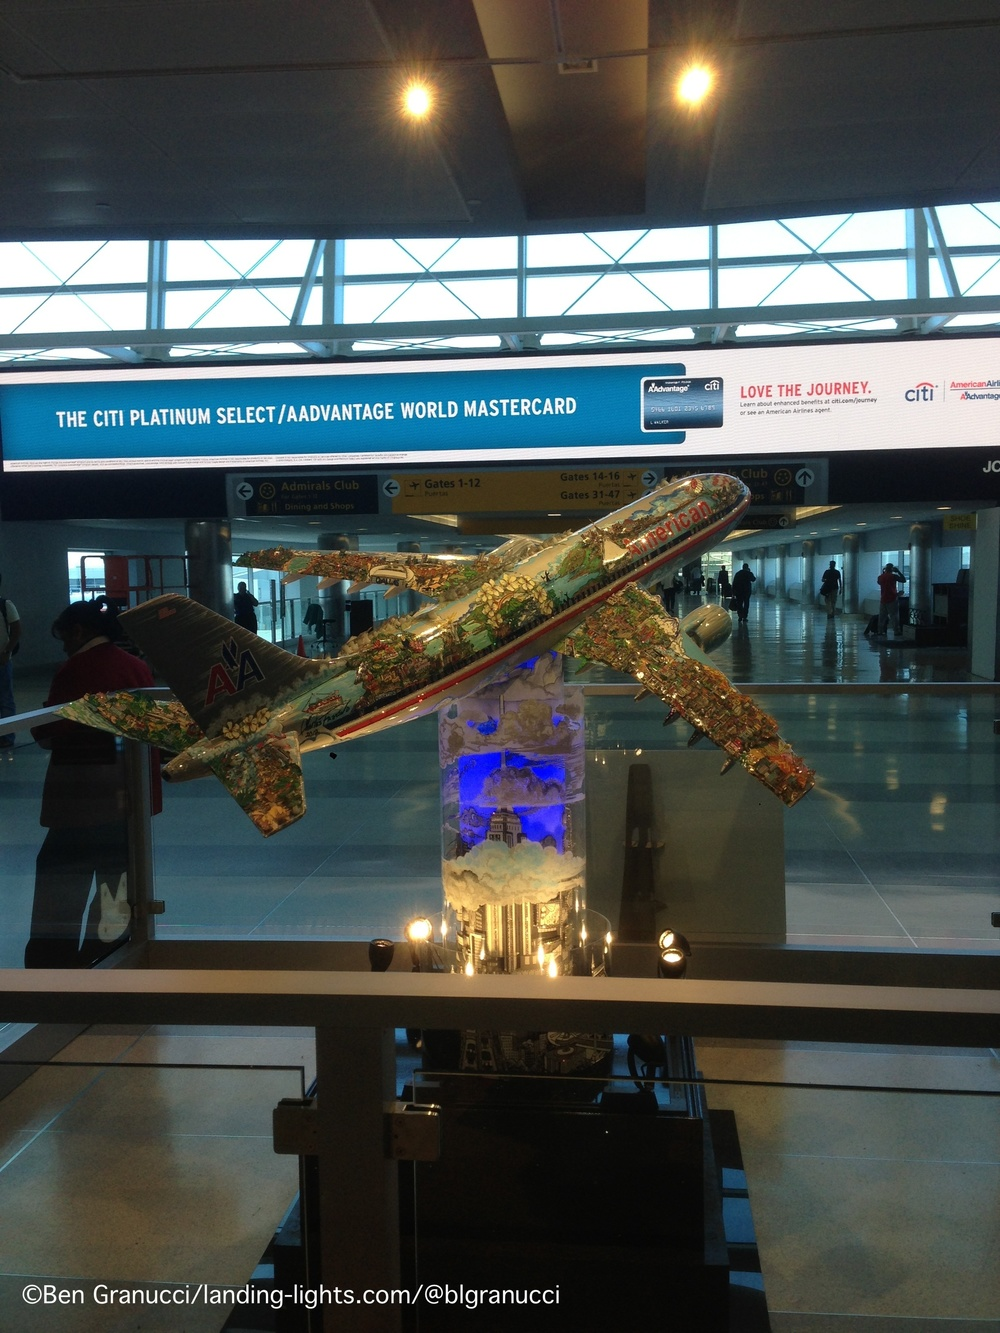 Terminal art. Can somebody please explain why they used an A300 years after they retired them?